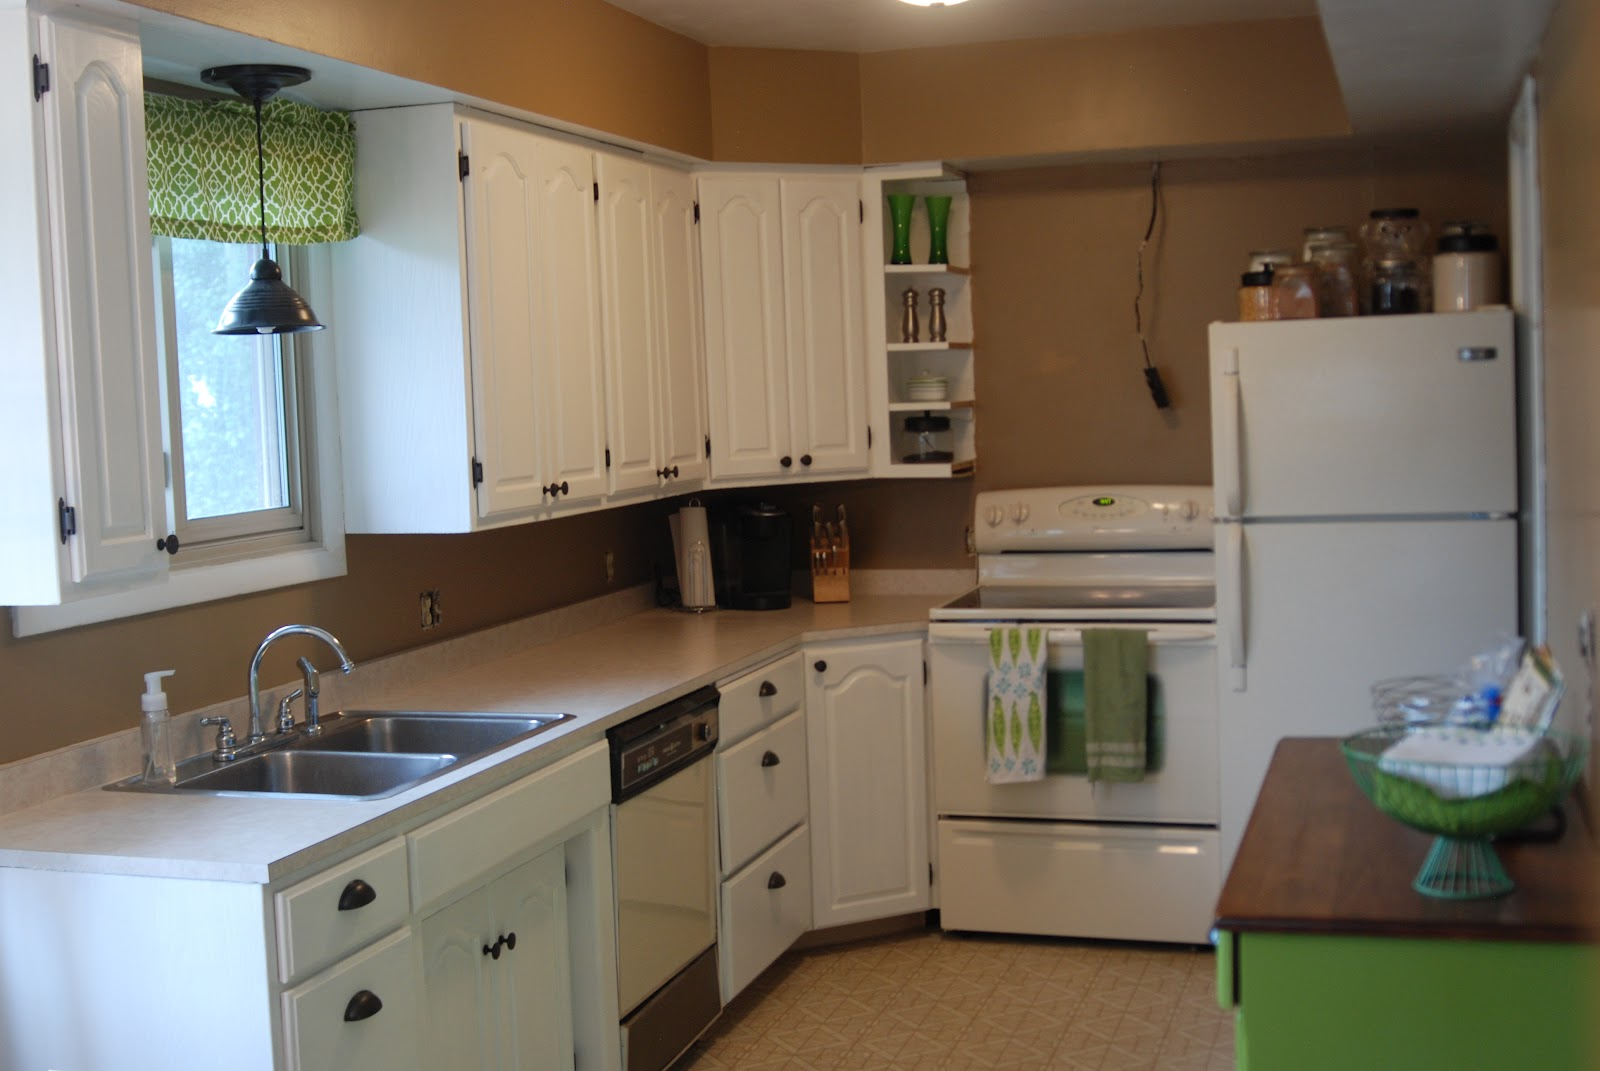 Kitchen Cabinets Not Only Have Doors But Bright Crisp White Doors